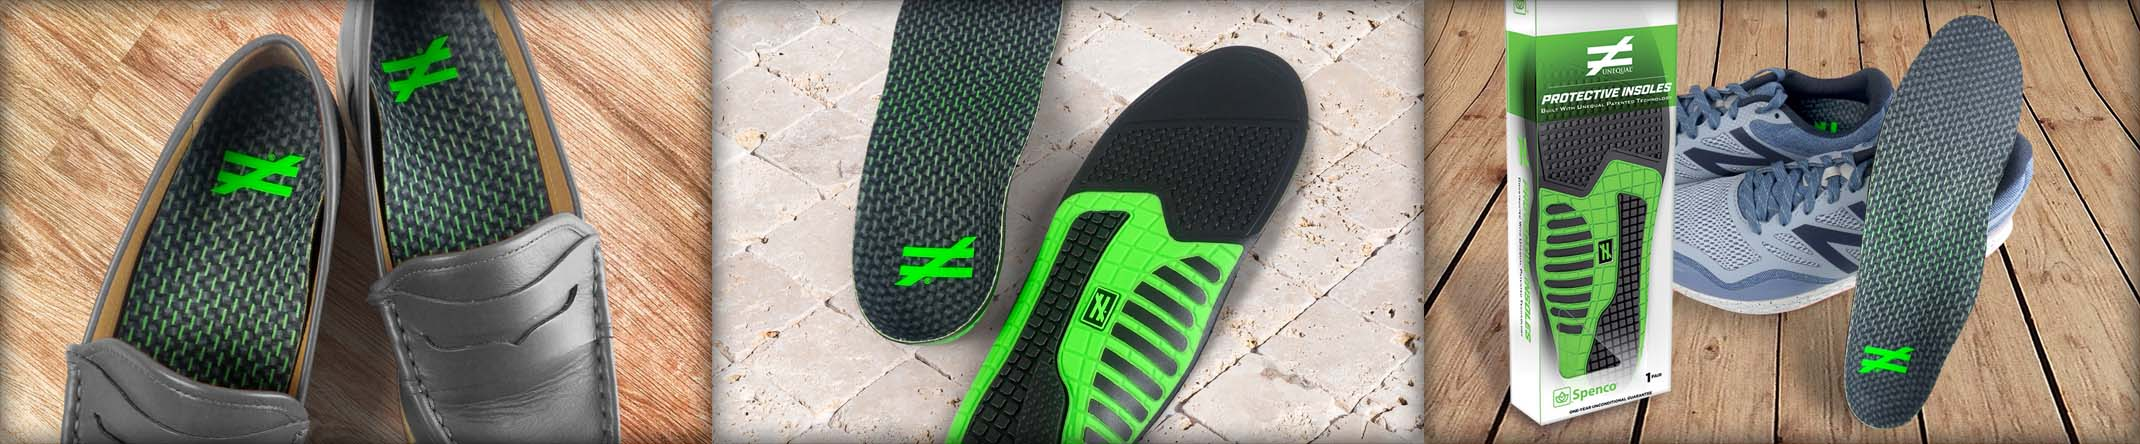 pro-athlete-stability-insole-protection